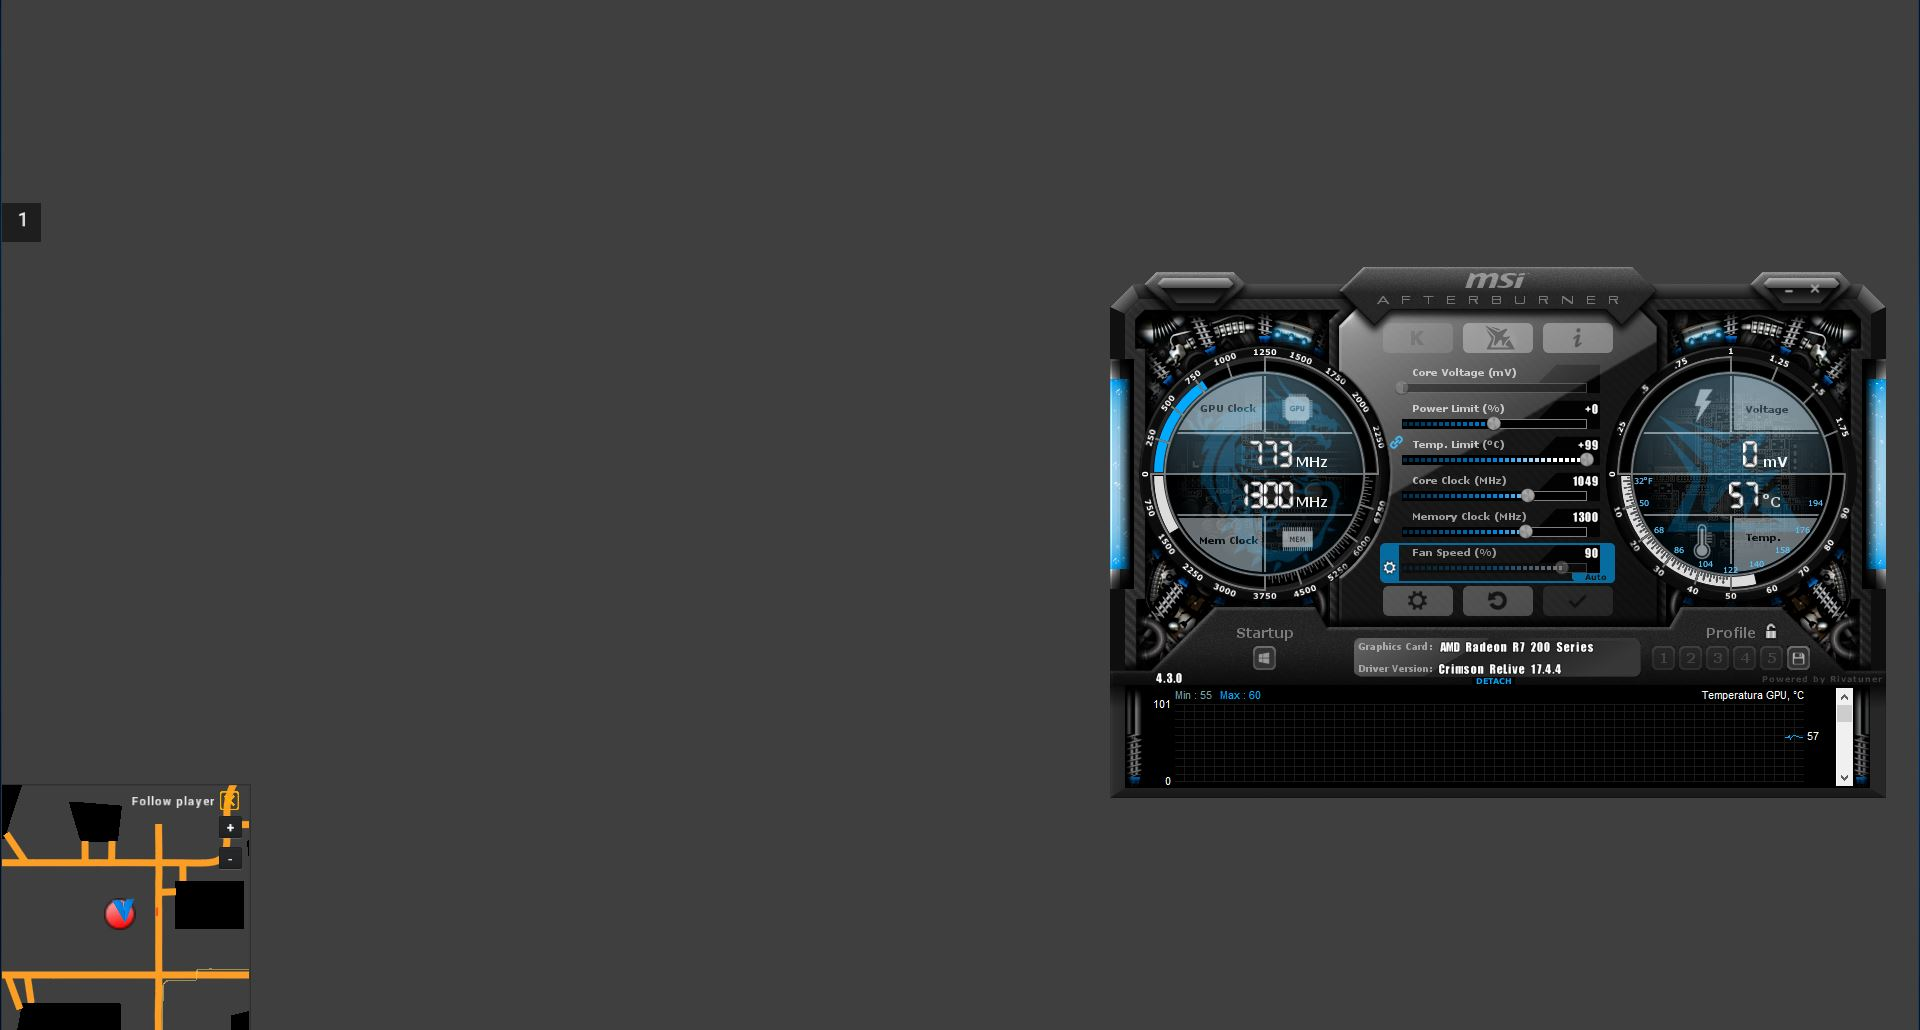 Grey screen if i use msi afterburner - Archive - Cattle and